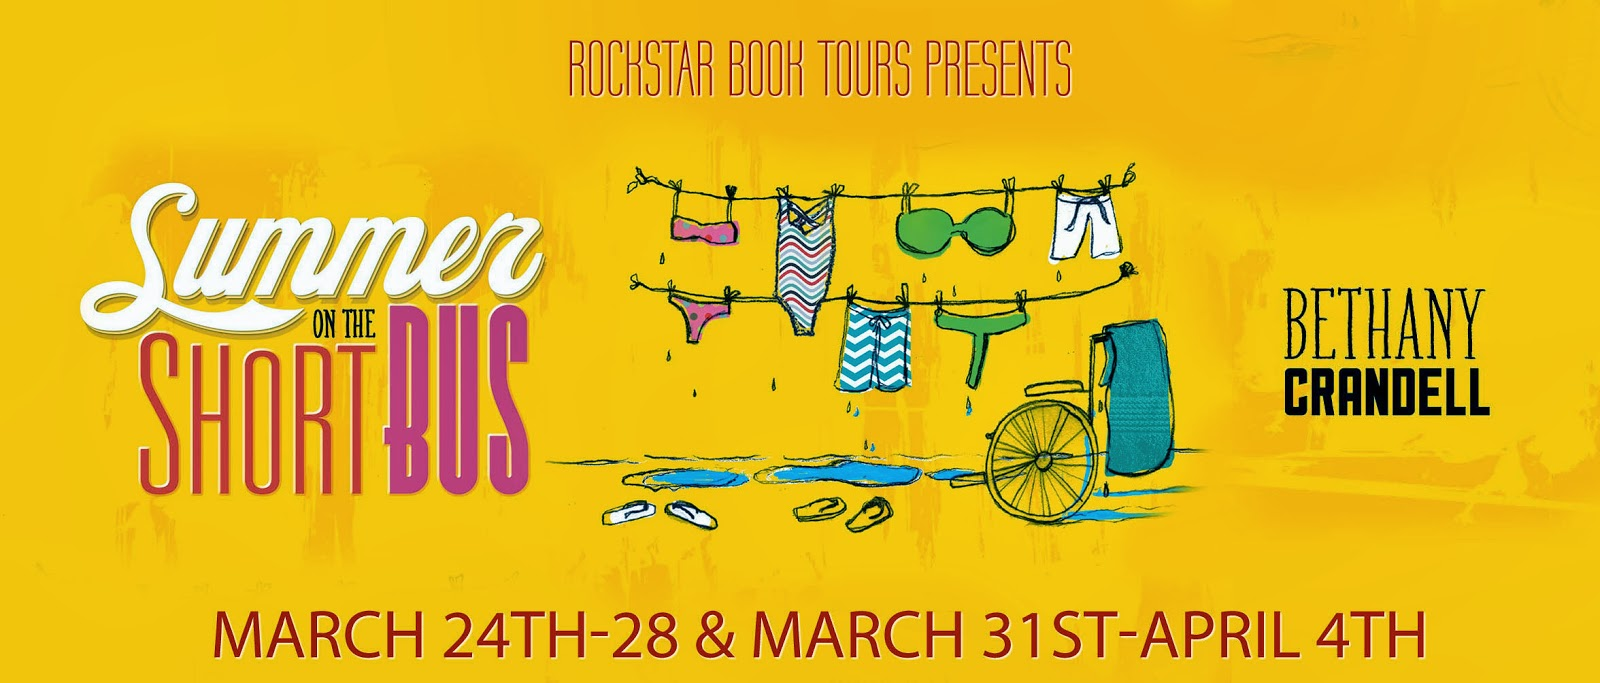 http://www.rockstarbooktours.com/2014/03/tour-schedule-summer-on-short-bus-by.html